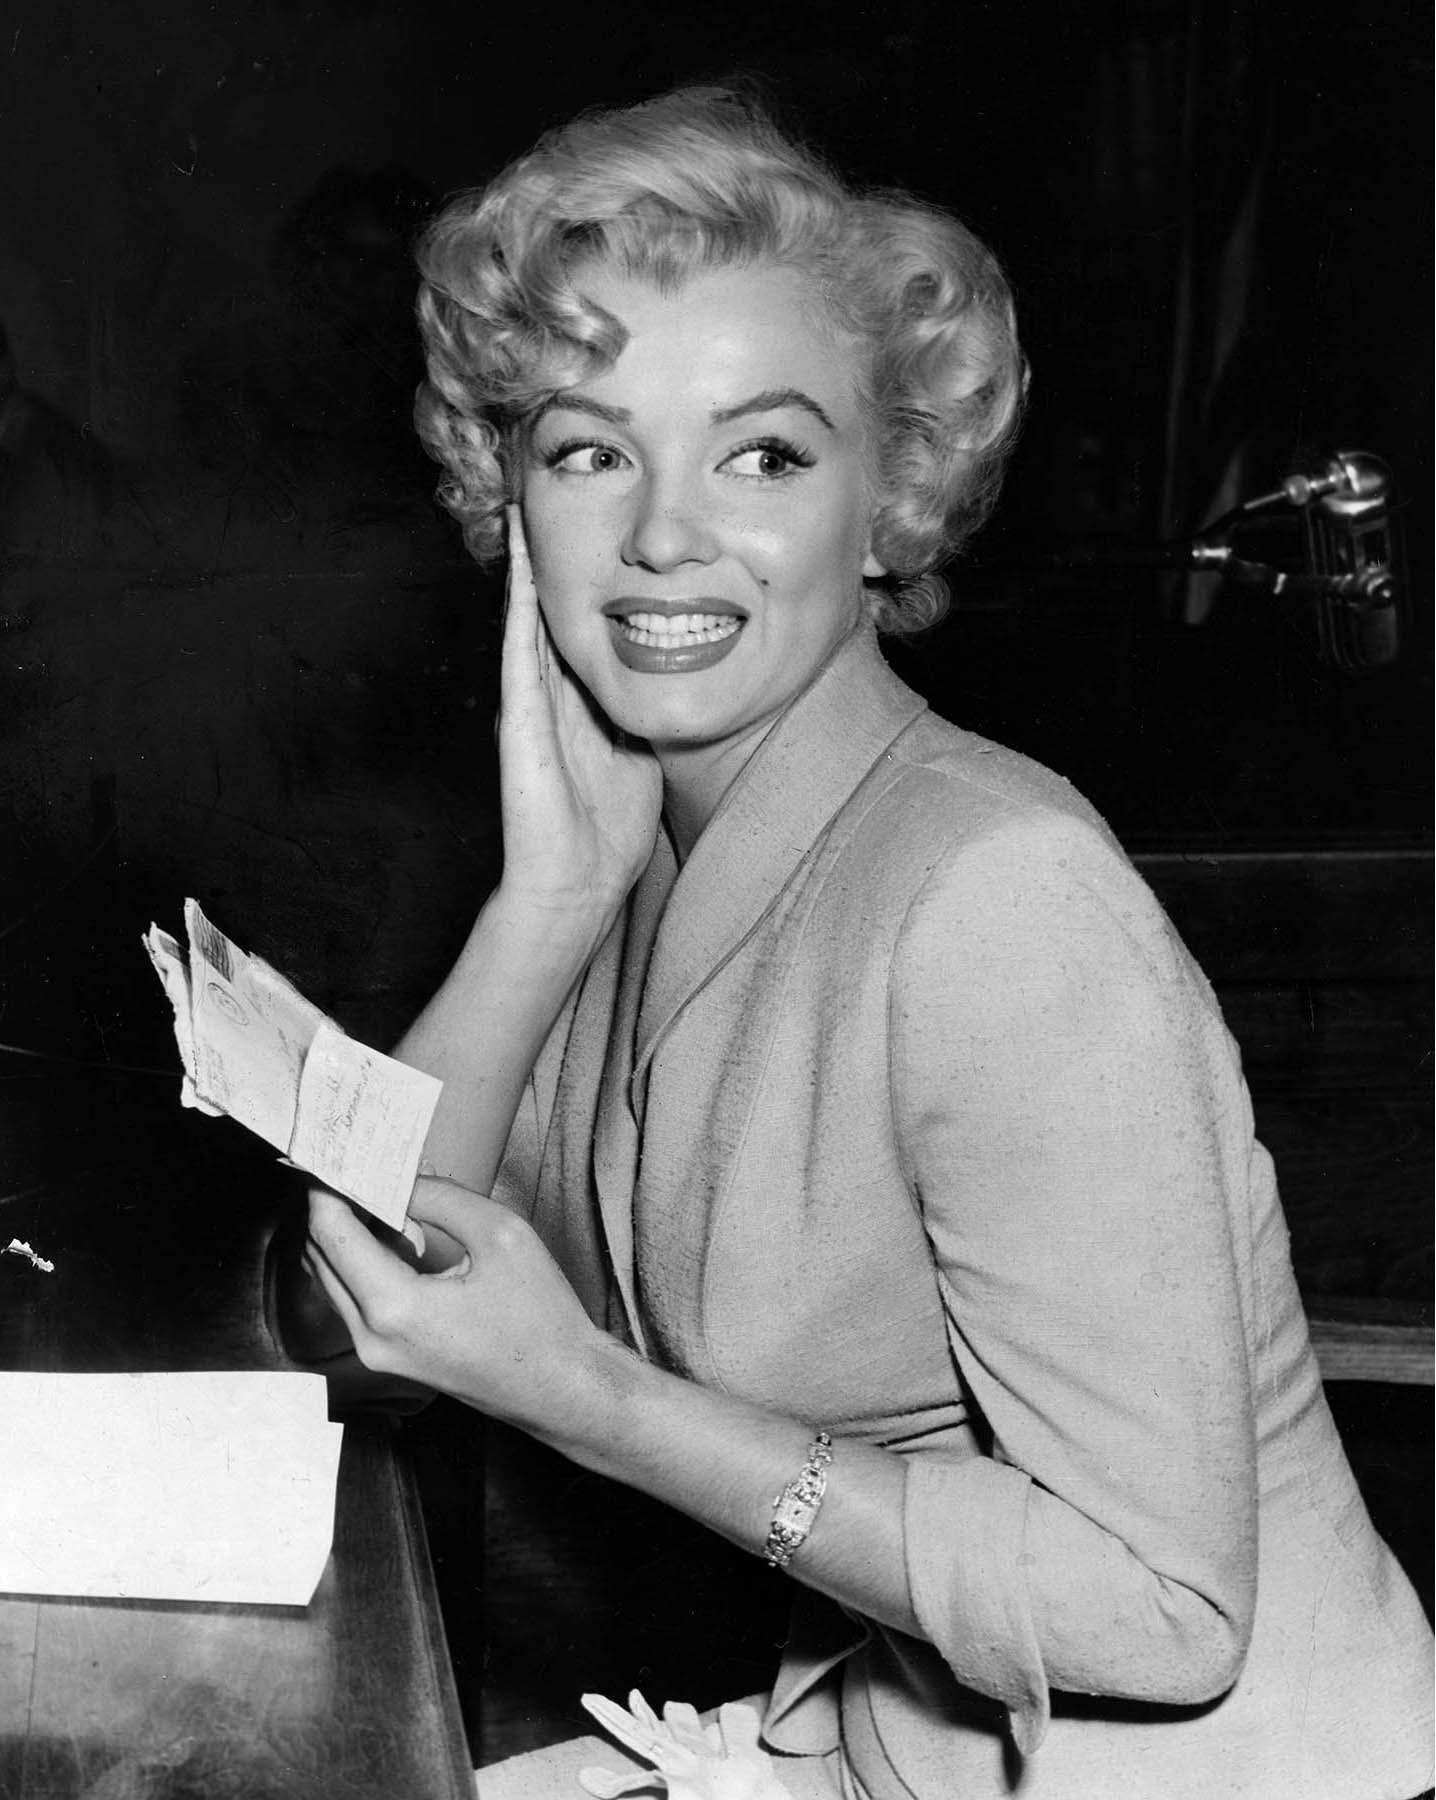 June 26, 1952: Marilyn Monroe in court during trial of two men accused of trying to sell